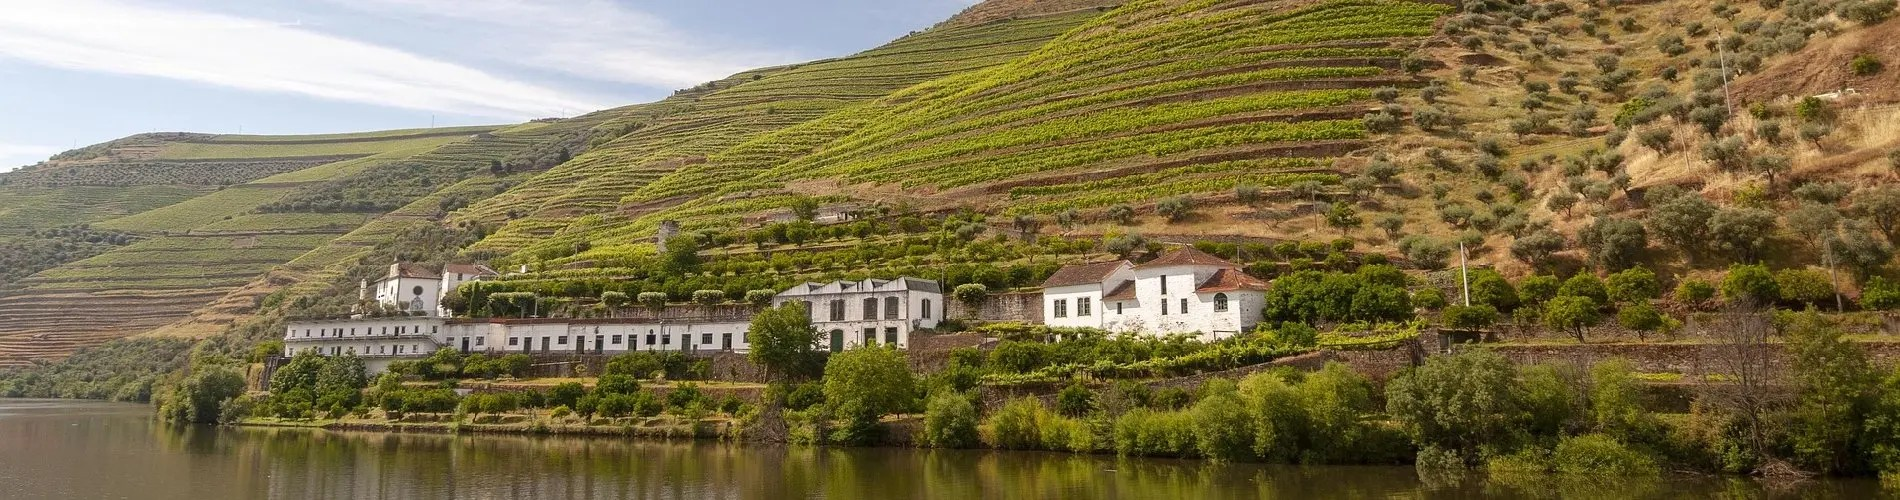 Winemaking in Portugal